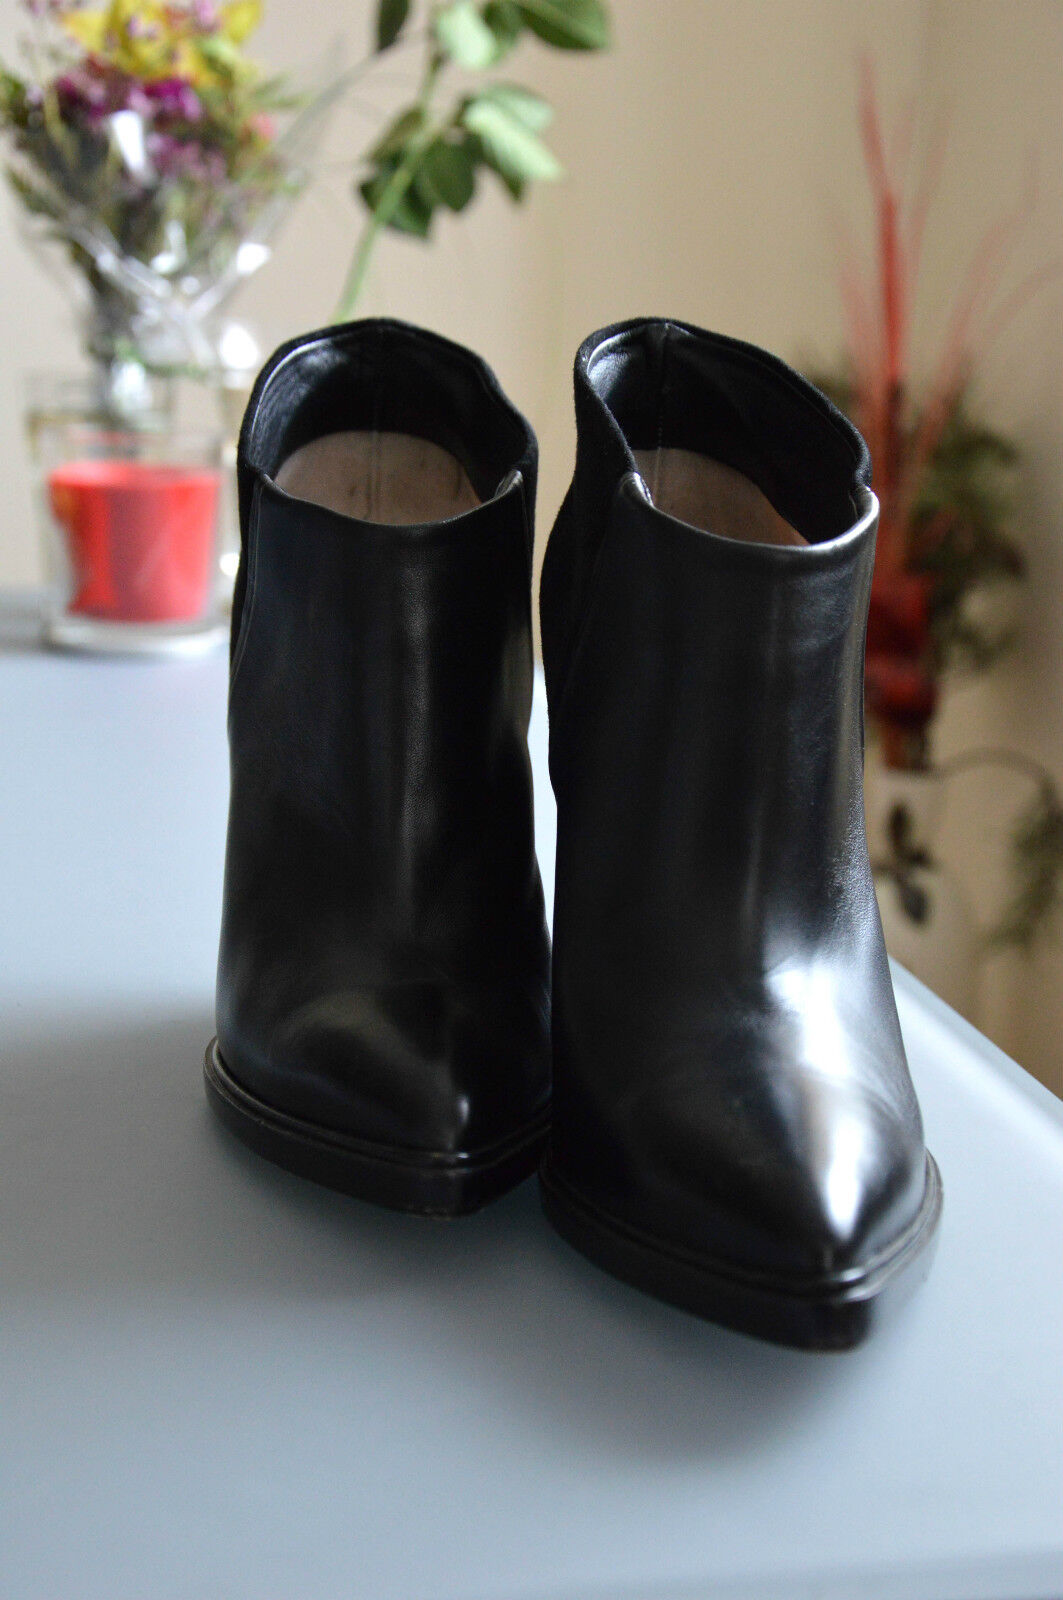 Ladies Black Black Black Wedge Ankle Booties by Bally, size 9US (39), excellent condition c09b50